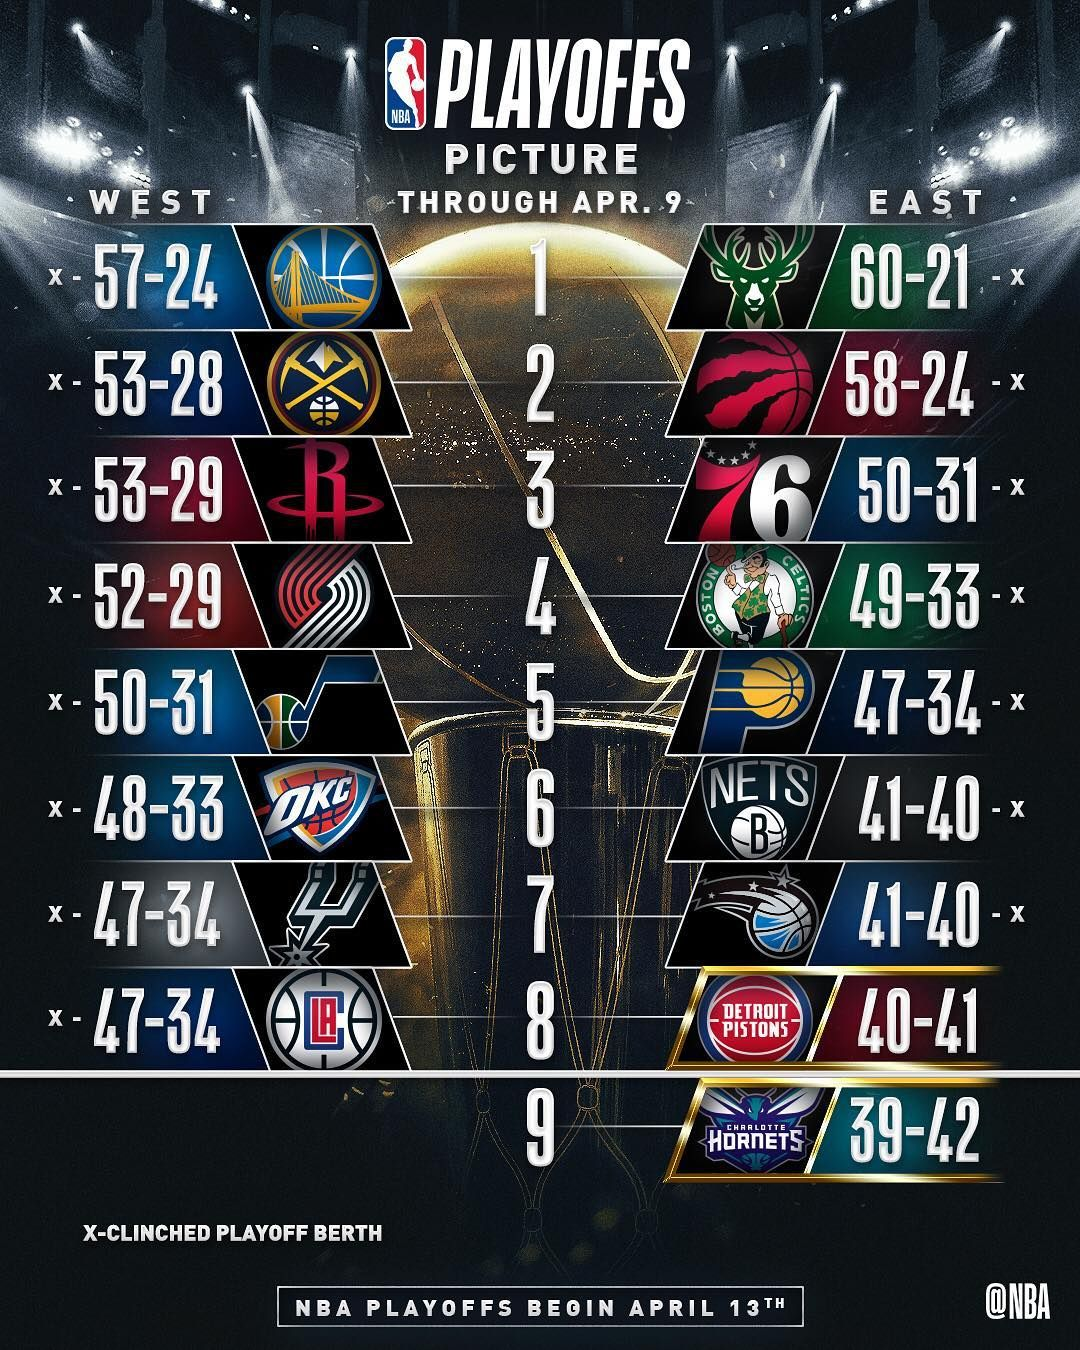 The Nbaplayoffs Picture Ahead Of The Final Day Of The Regular Season Picture Credit Nba Nba Buckets Nbafinals Nbagame Bas Playoff Picture Playoffs Nba